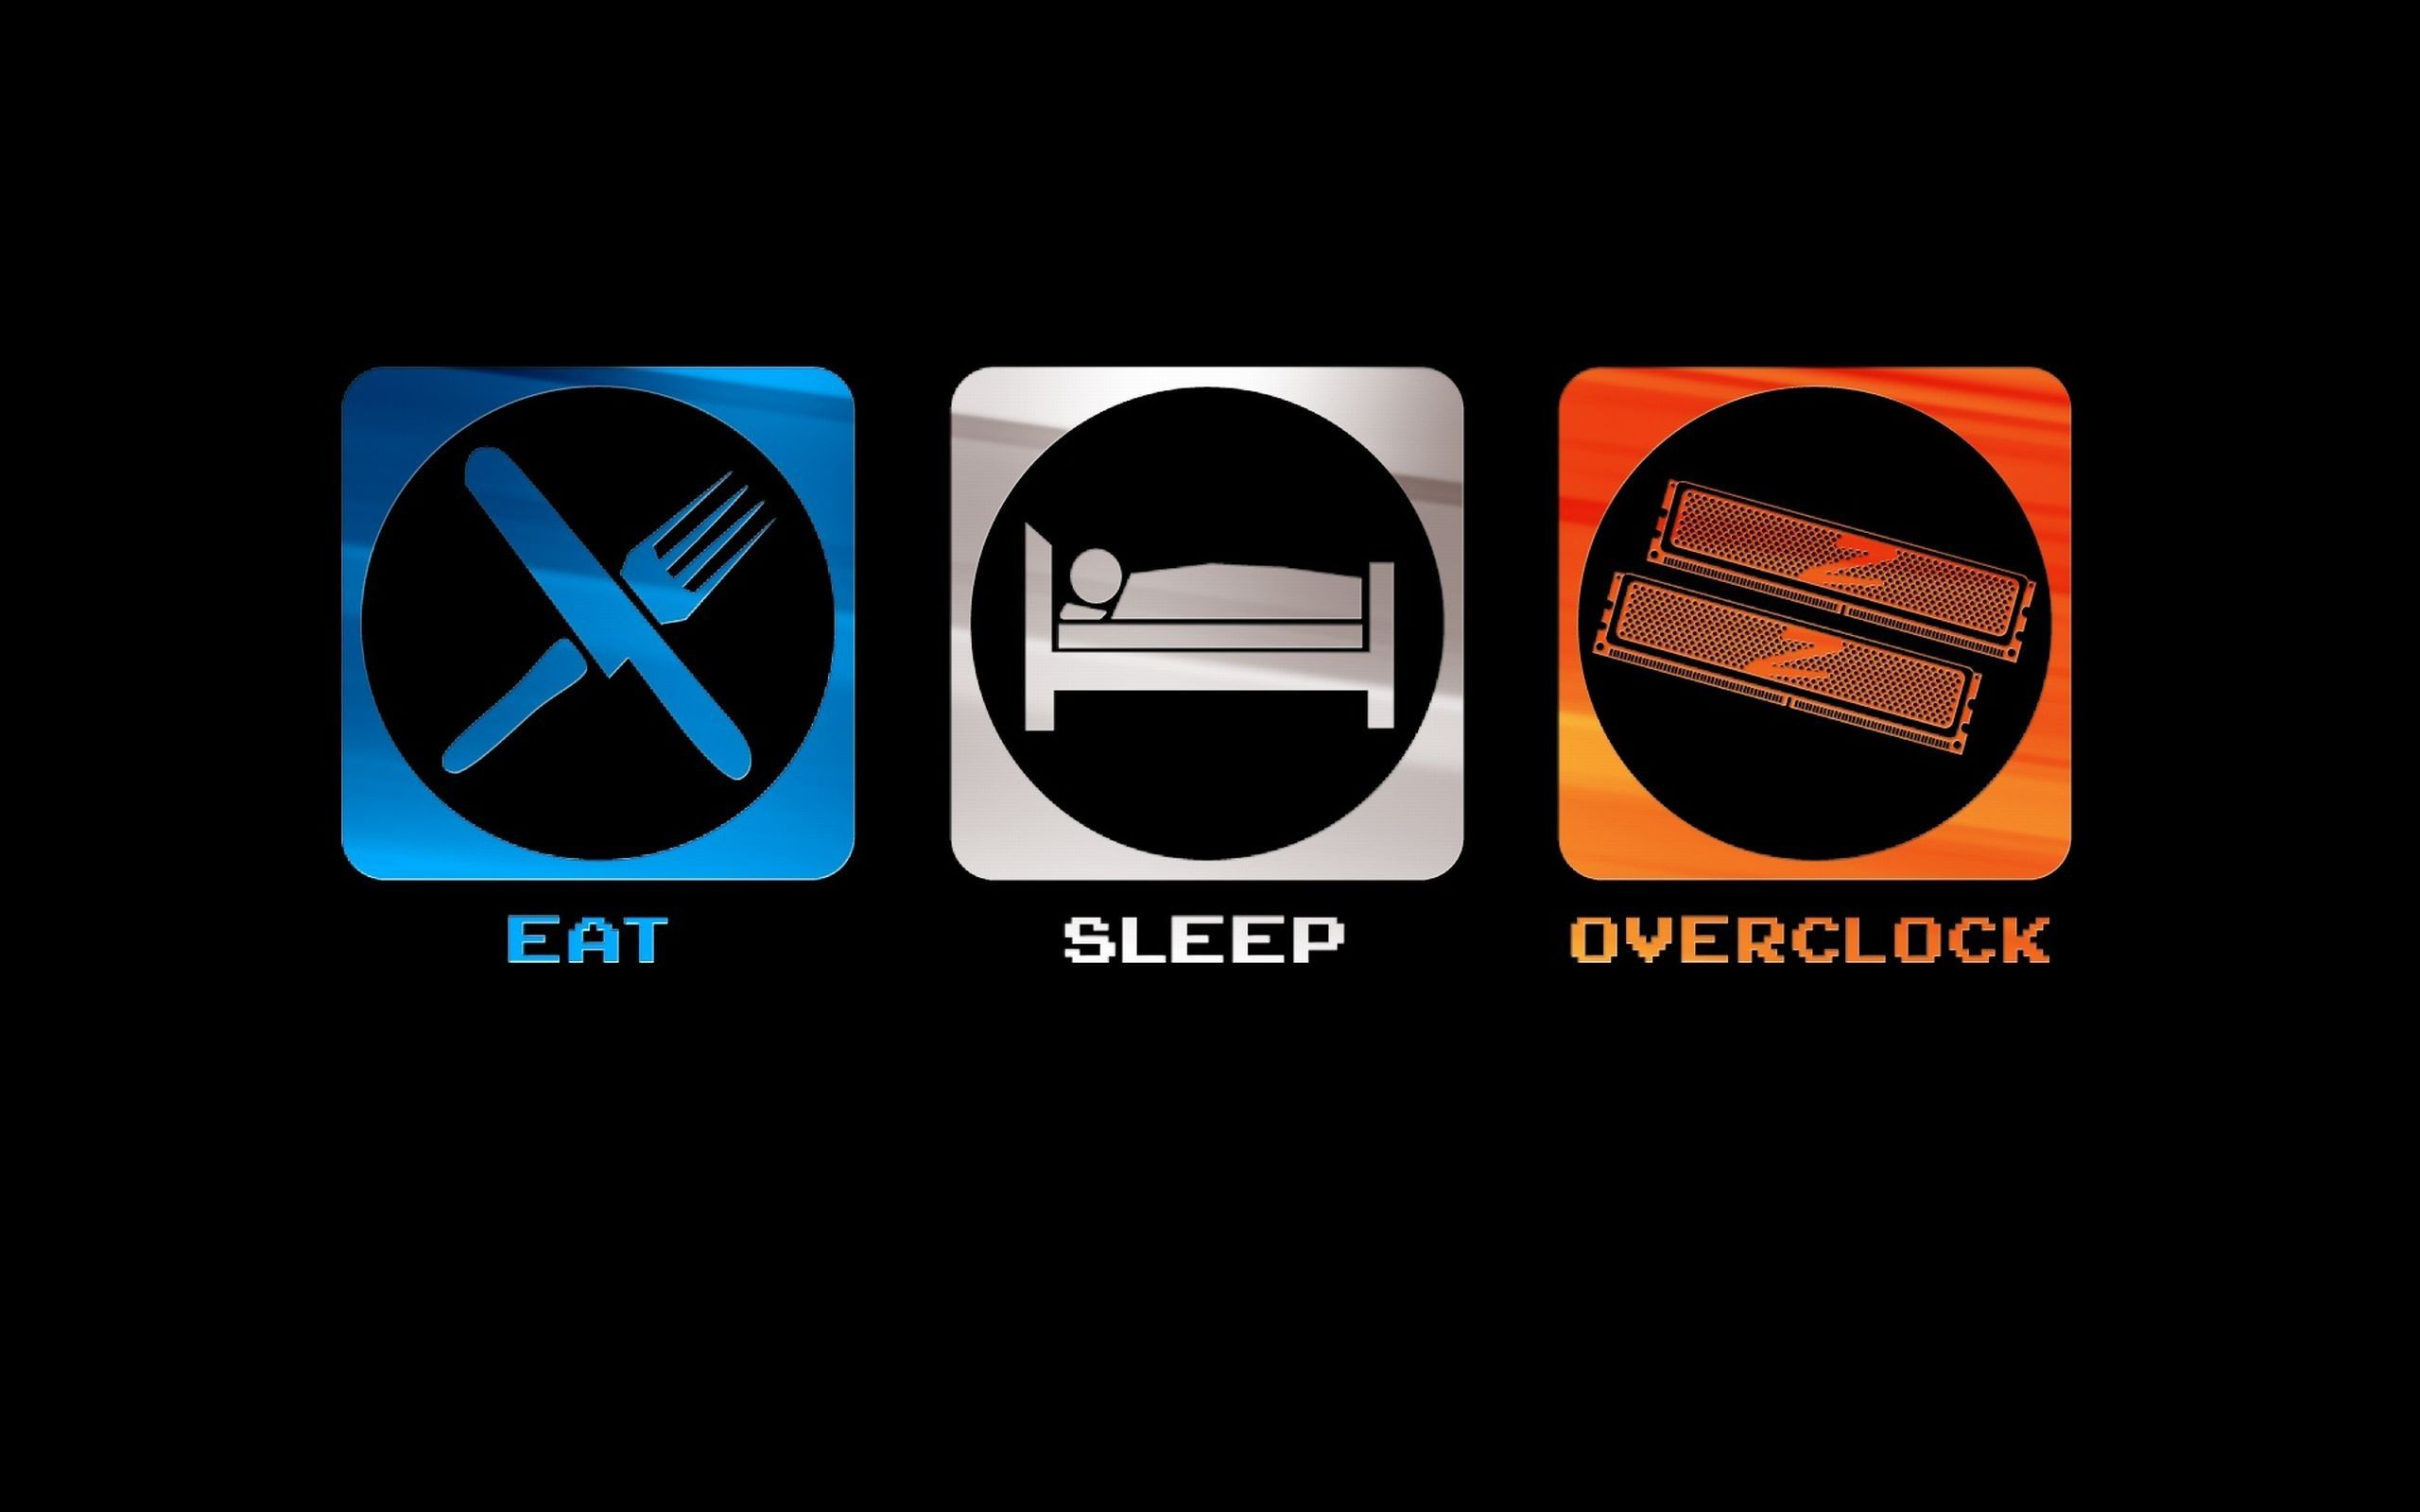 Eat Sleep Overclock Computers Nerd Hd Desktop Wallpaper Black 2560x1600px